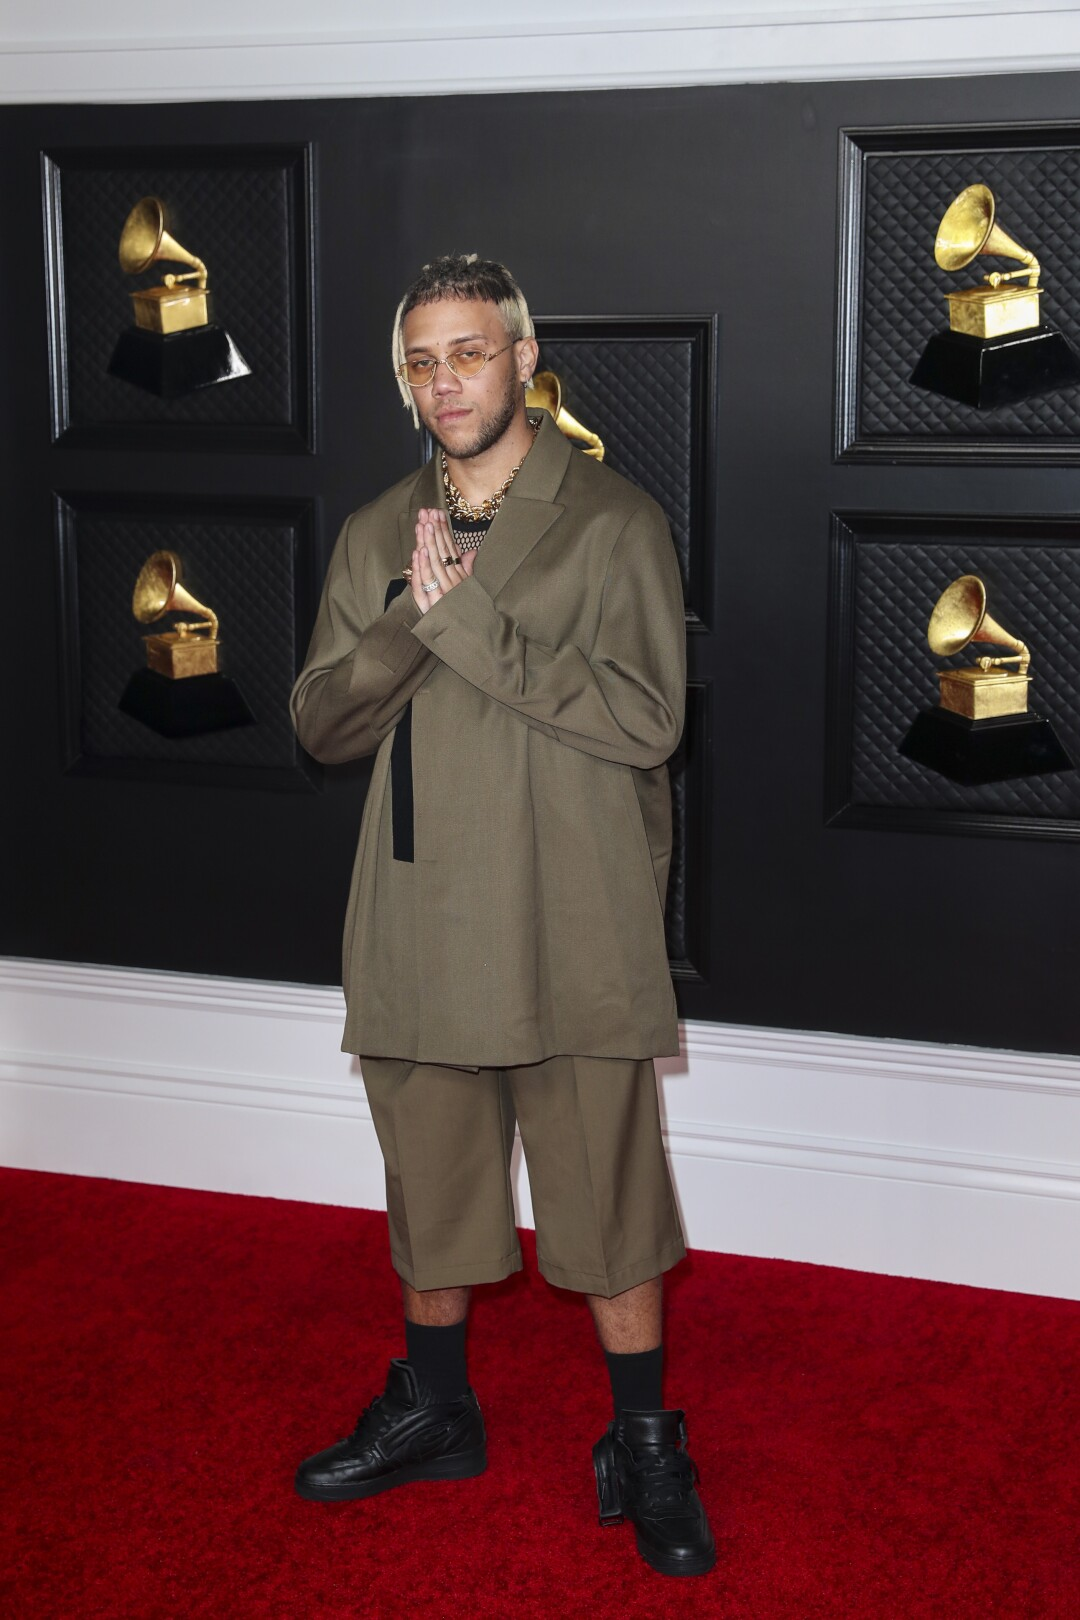 2021 Grammys: Fashion from the red carpet - Los Angeles Times